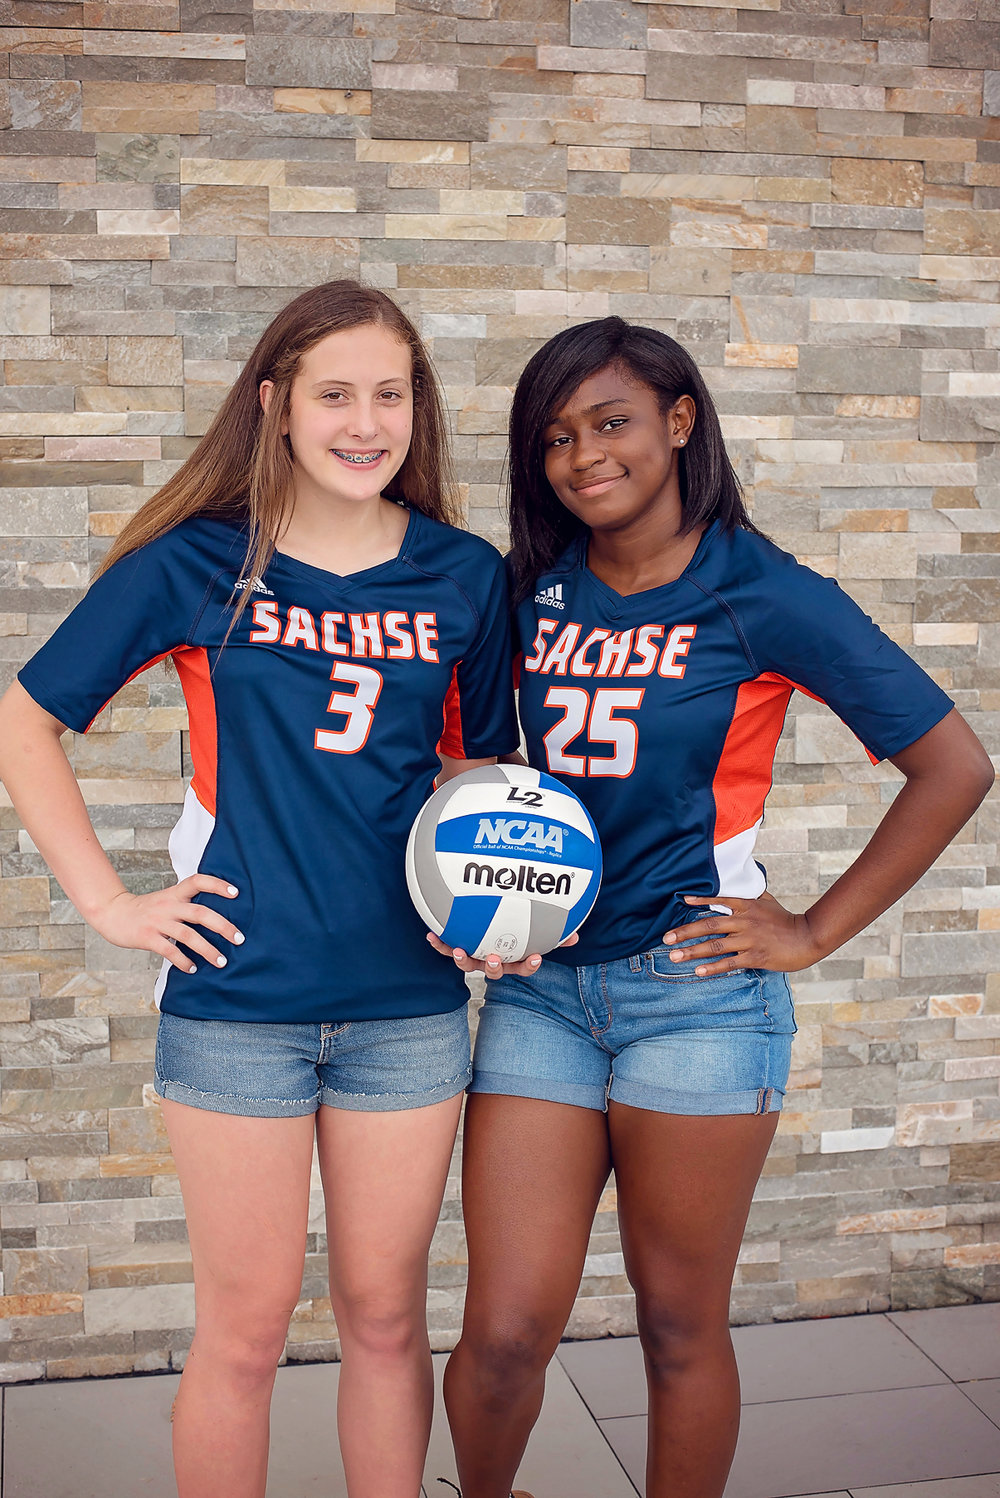 #Freshman #Fishies #SachseVolleyball